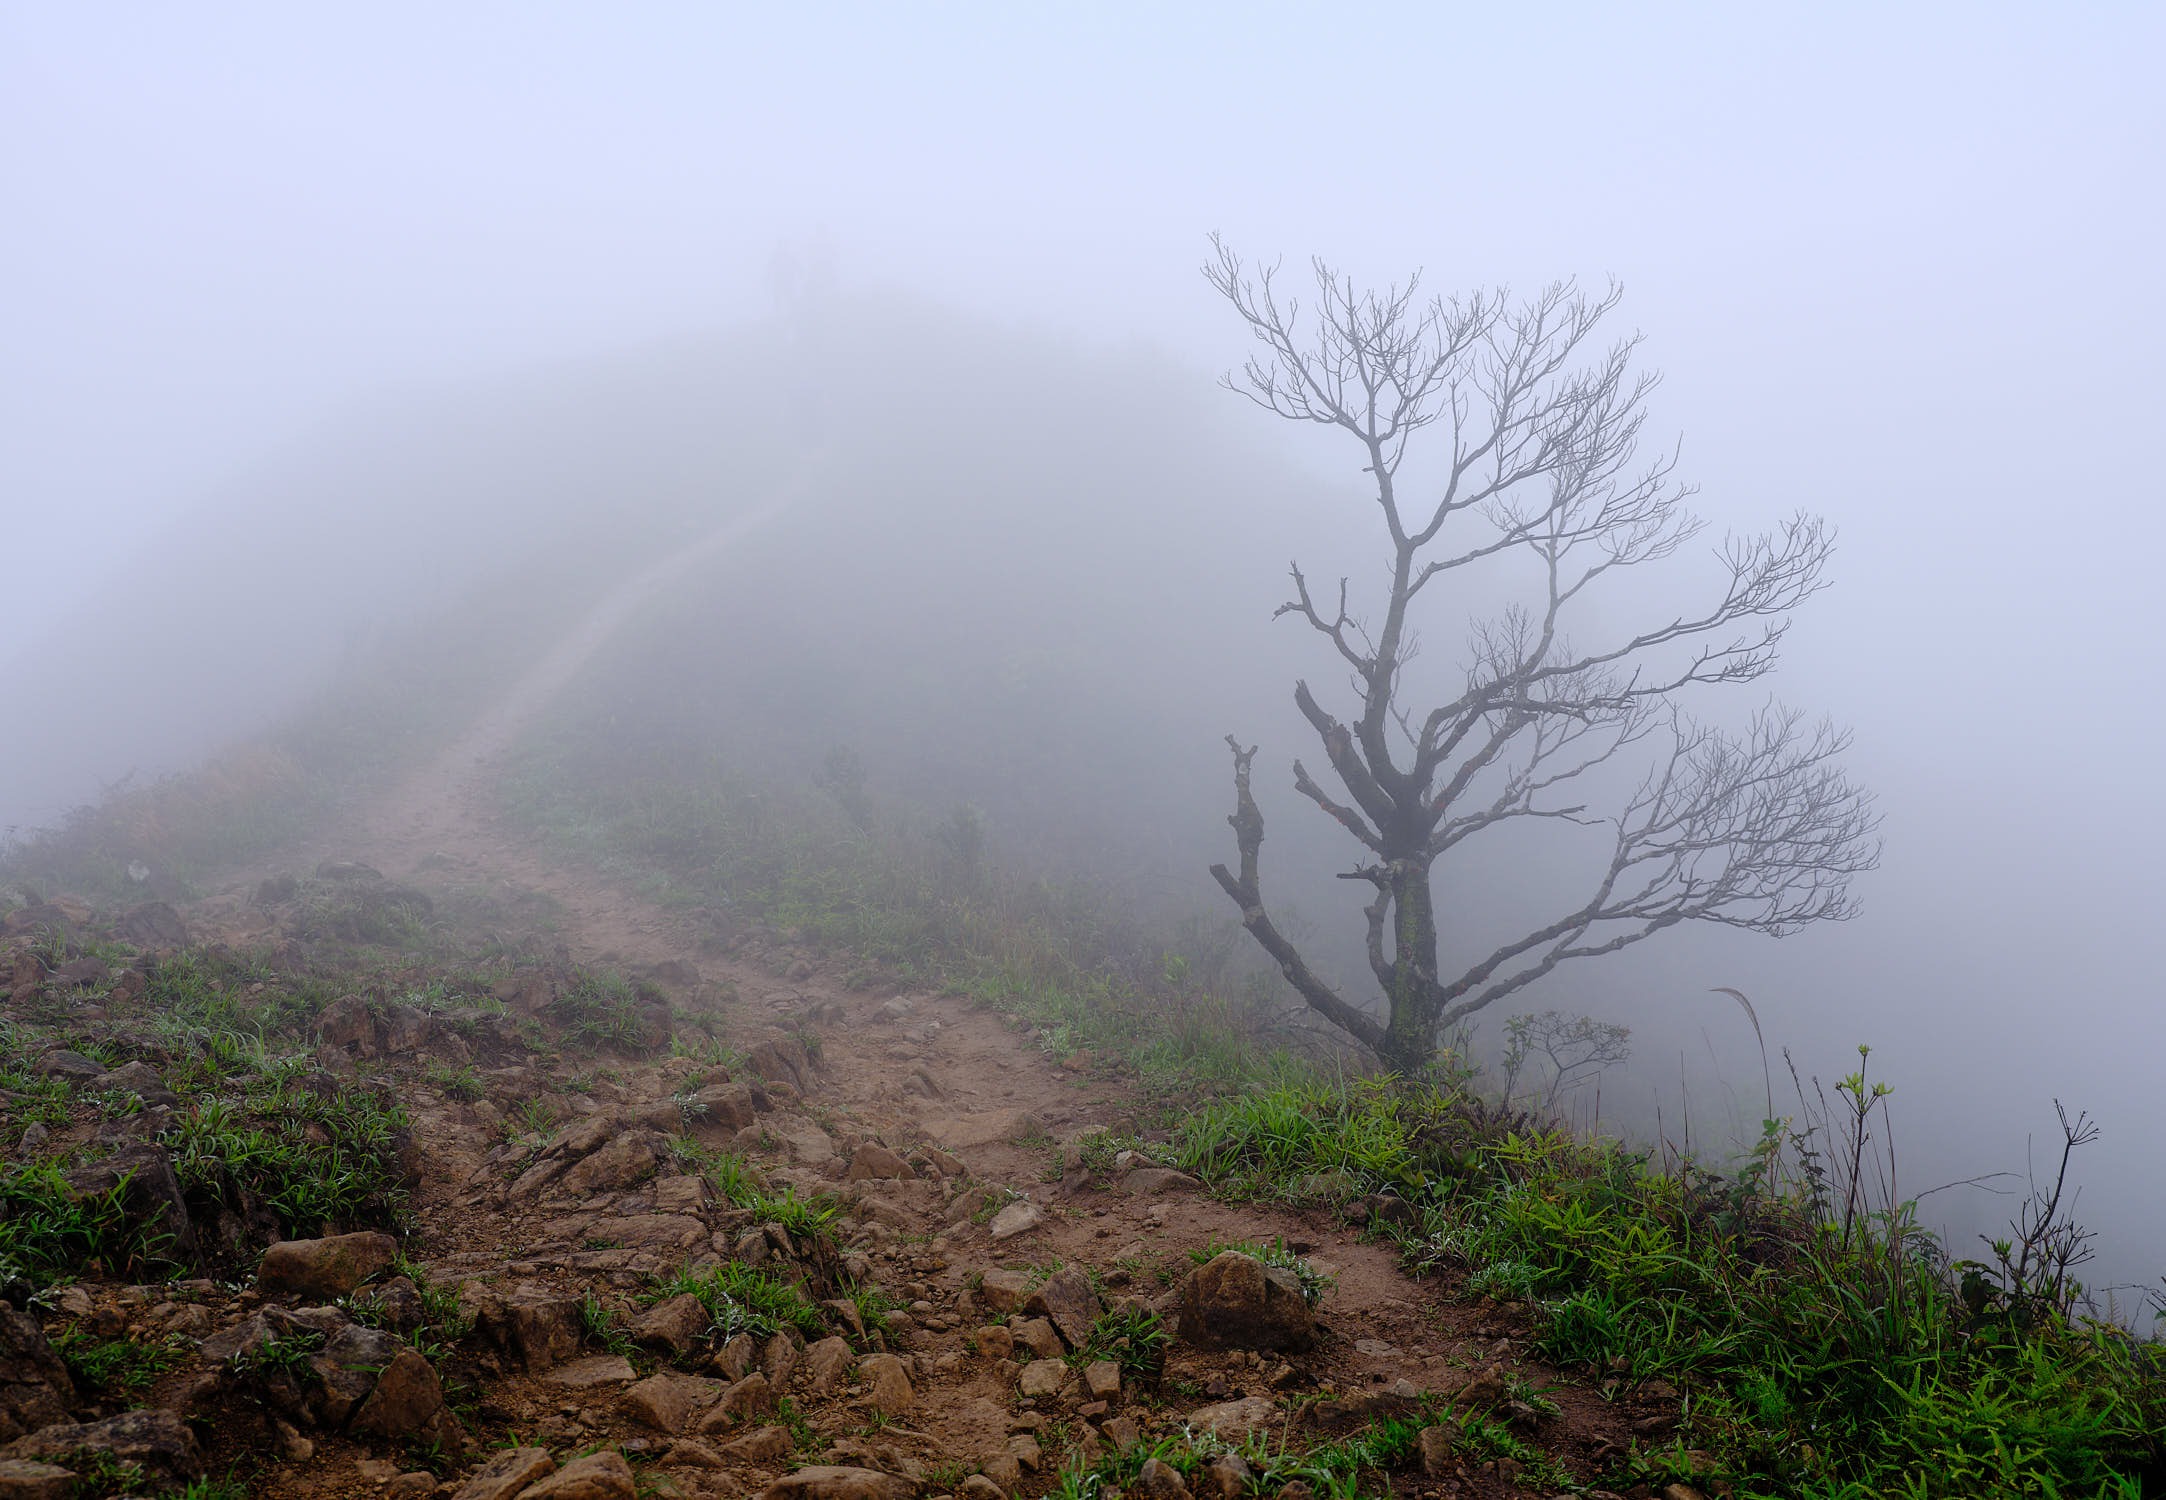 MacLehose Trail Section 4